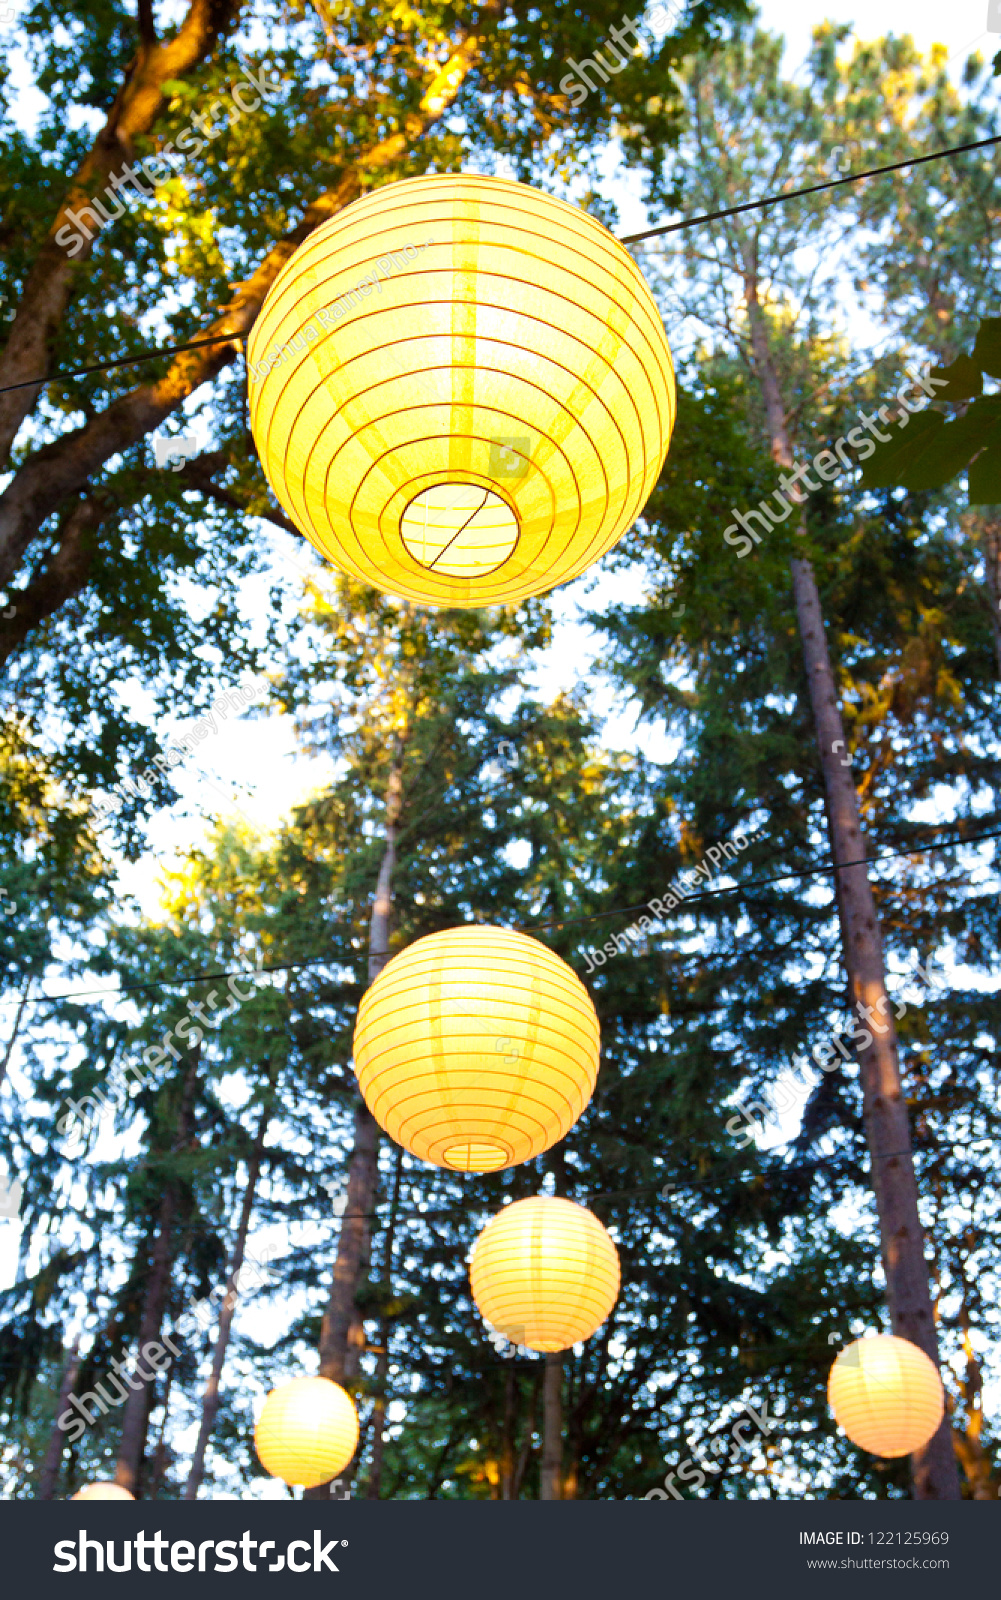 Yellow Wedding Decorations Hang Trees Wedding Stock Photo (Edit Now ...